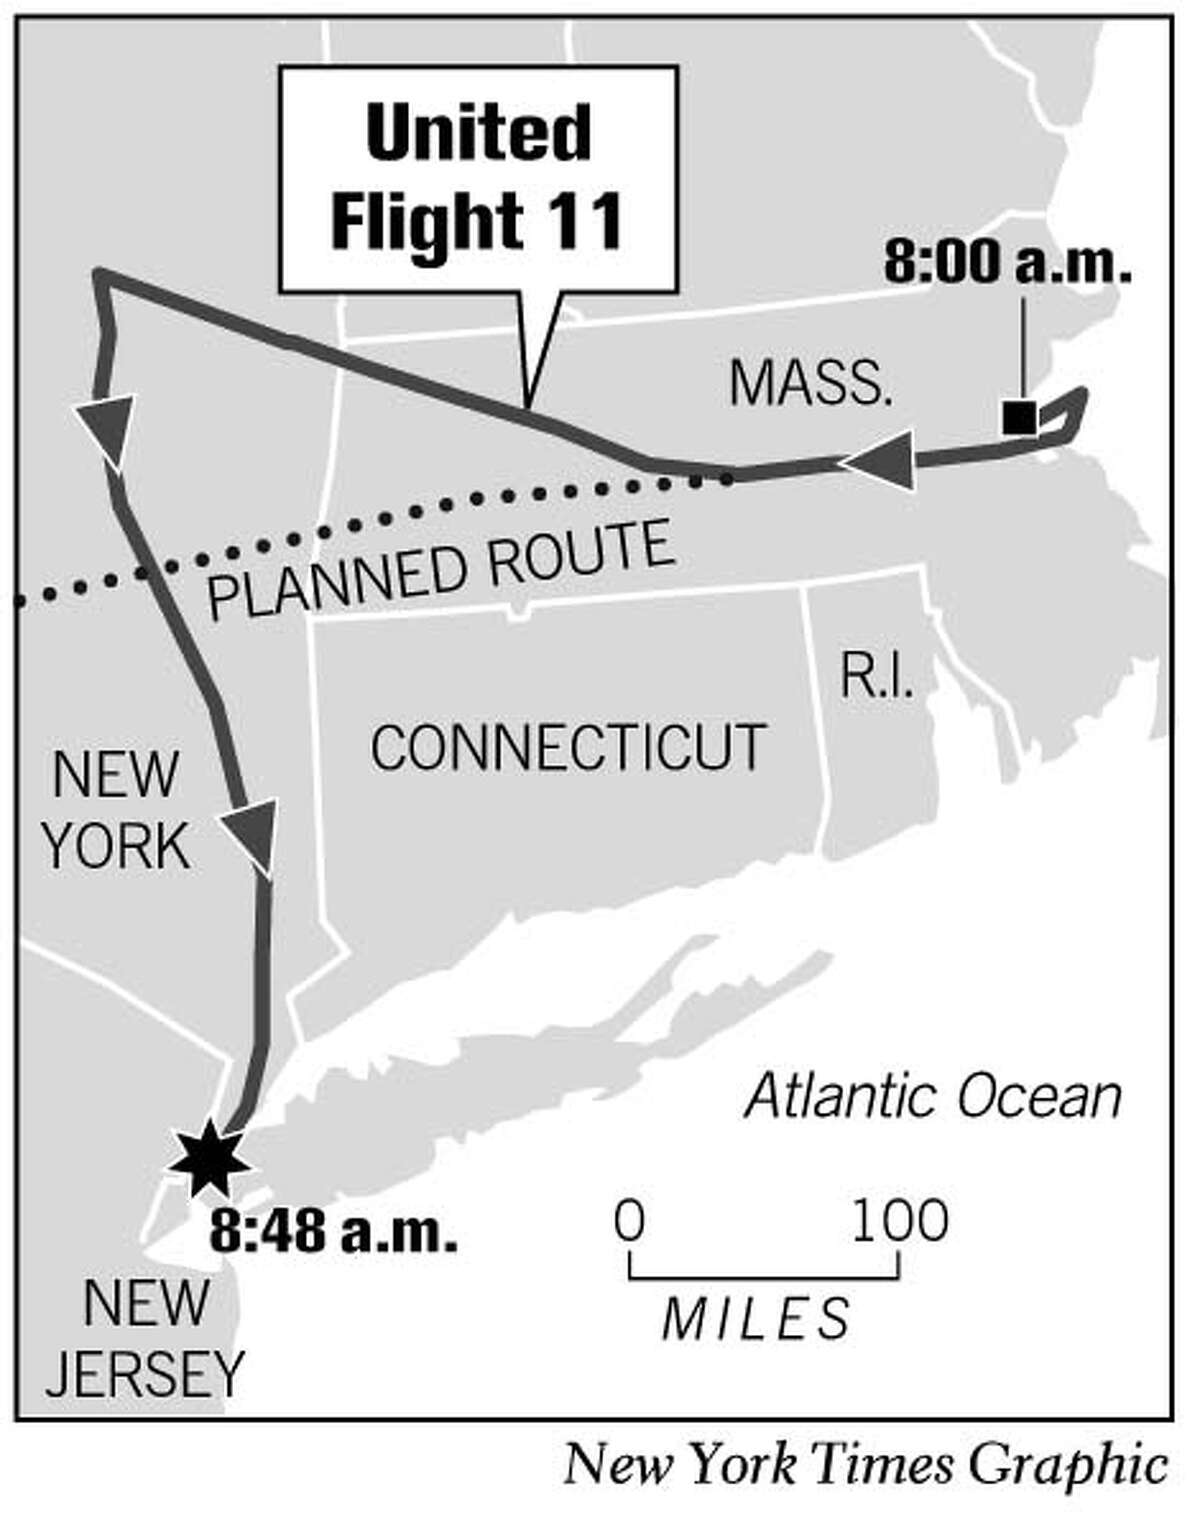 United Flight 11. New York Times Graphic